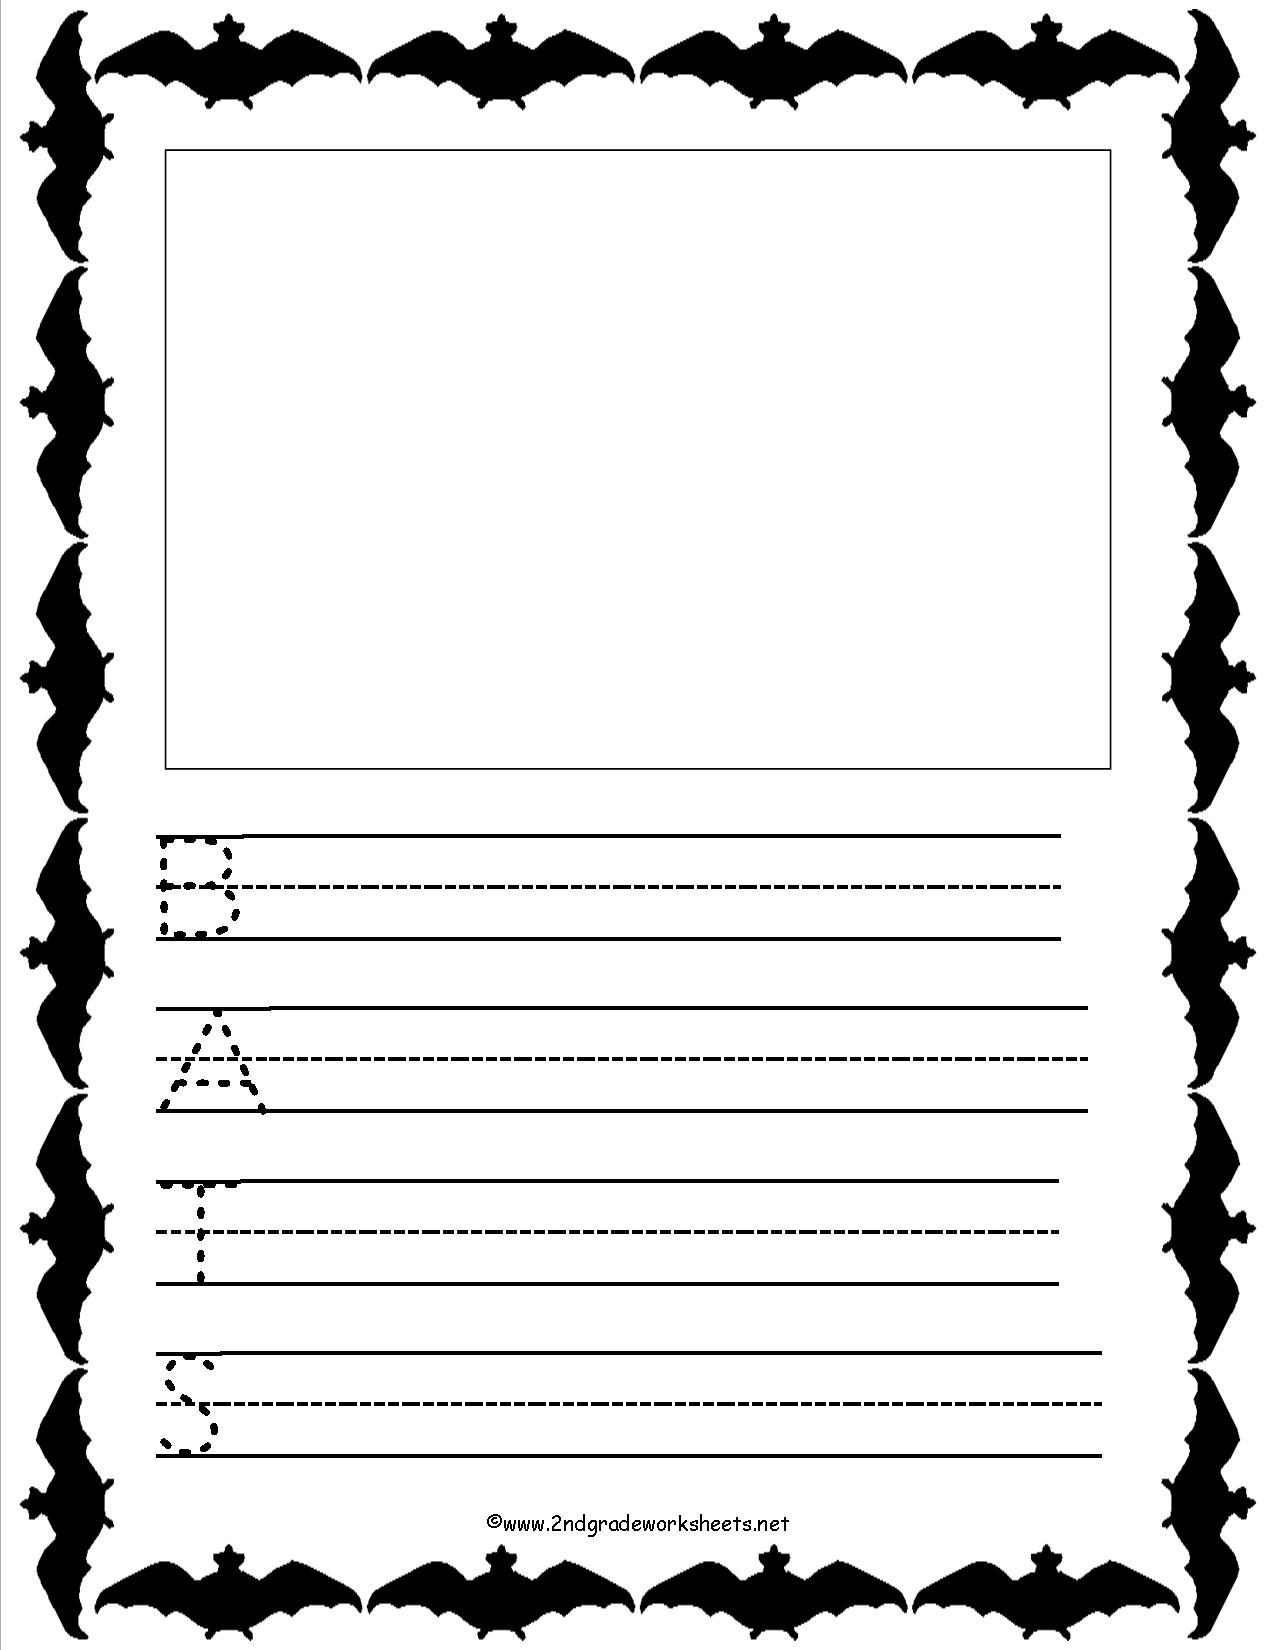 Acrostic Poem Forms, Templates, And Worksheets - Free Printable Bat Writing Paper